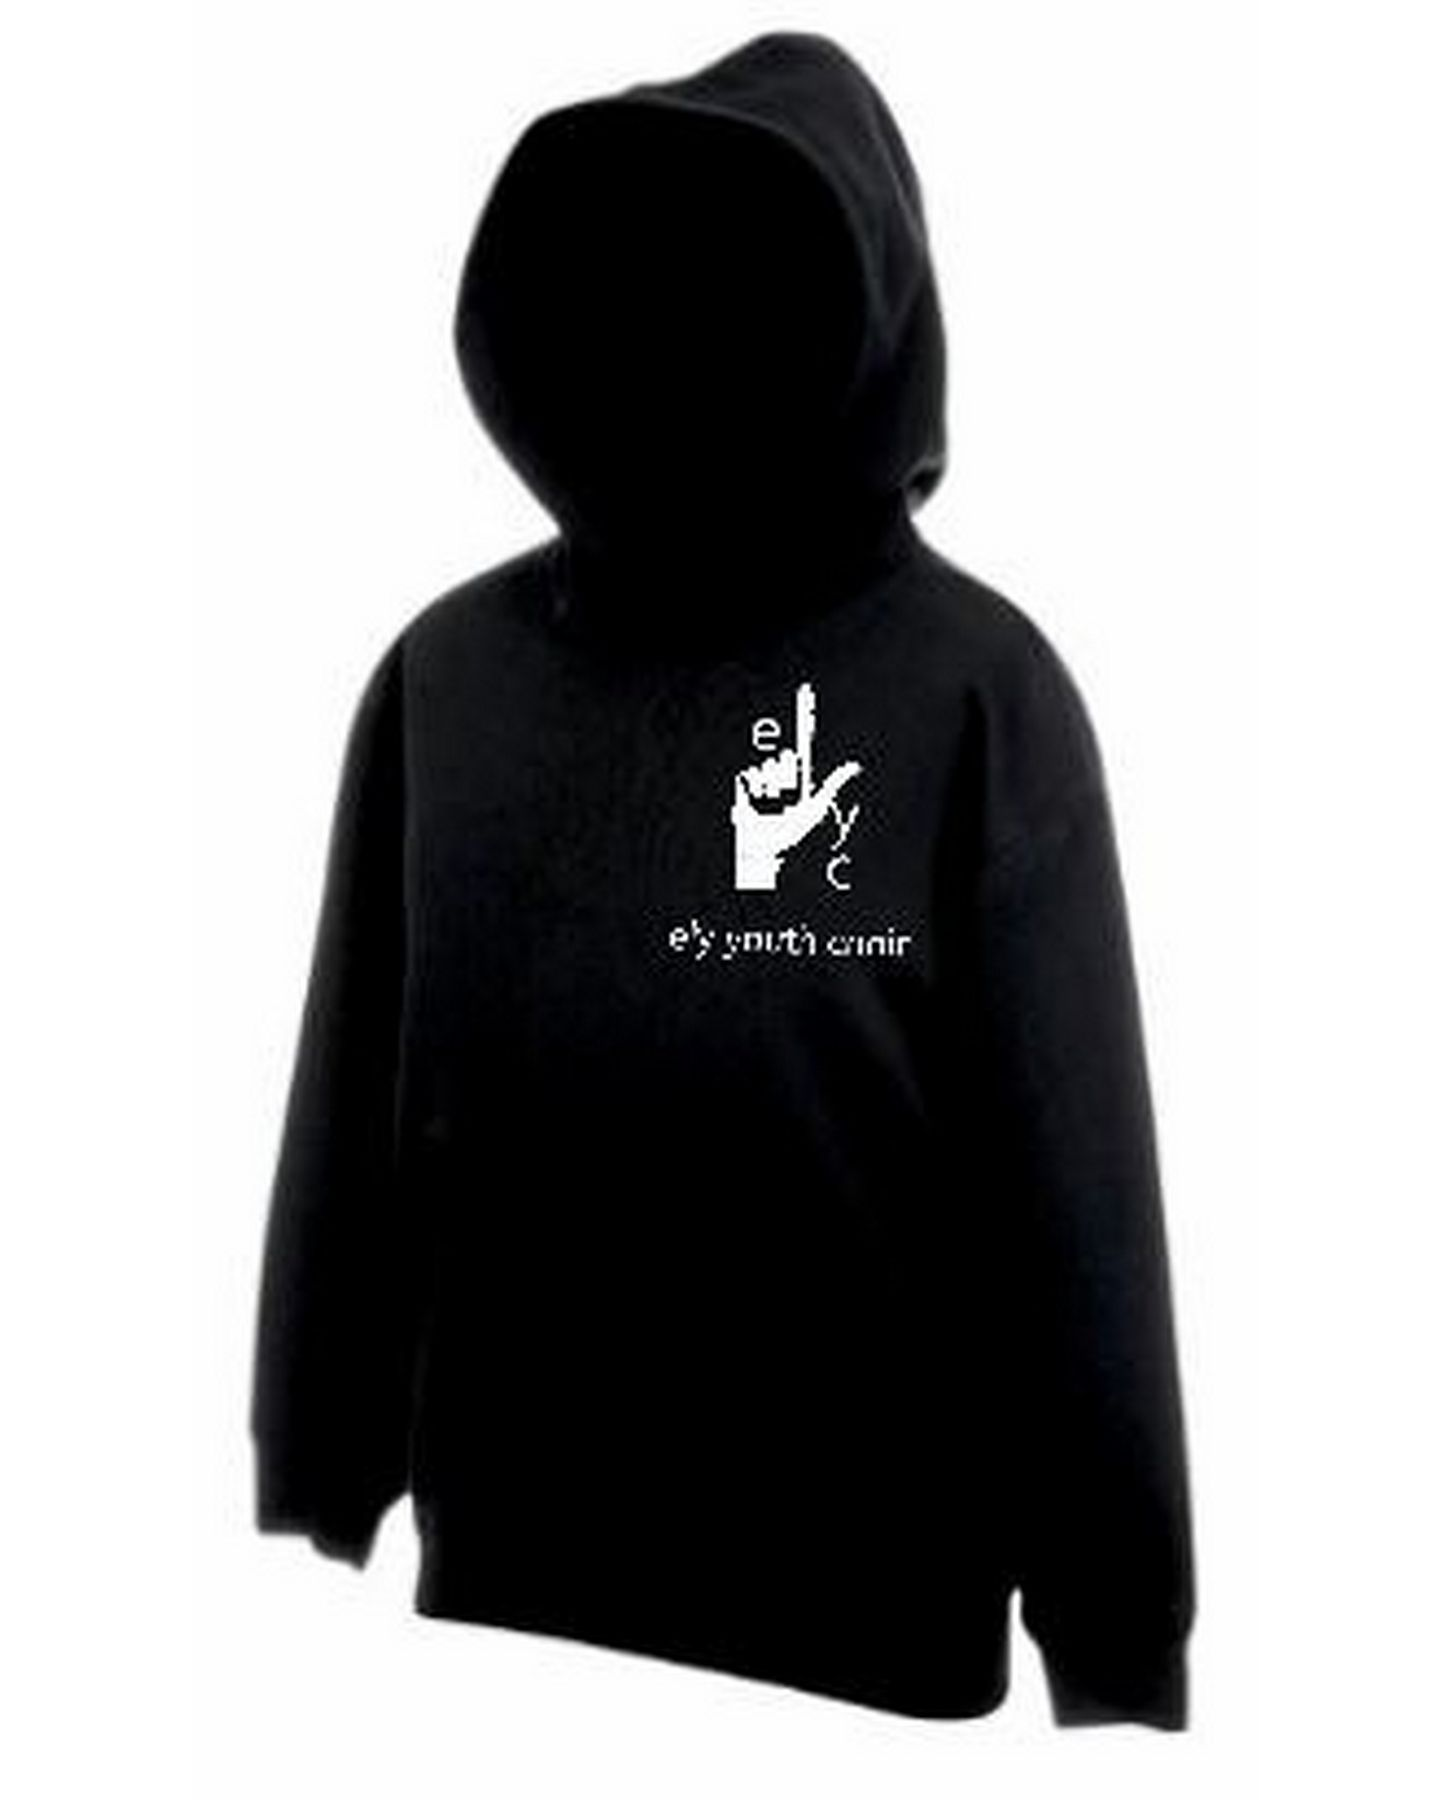 Ely Youth Choir – Classic Kids Hoodie 80/20